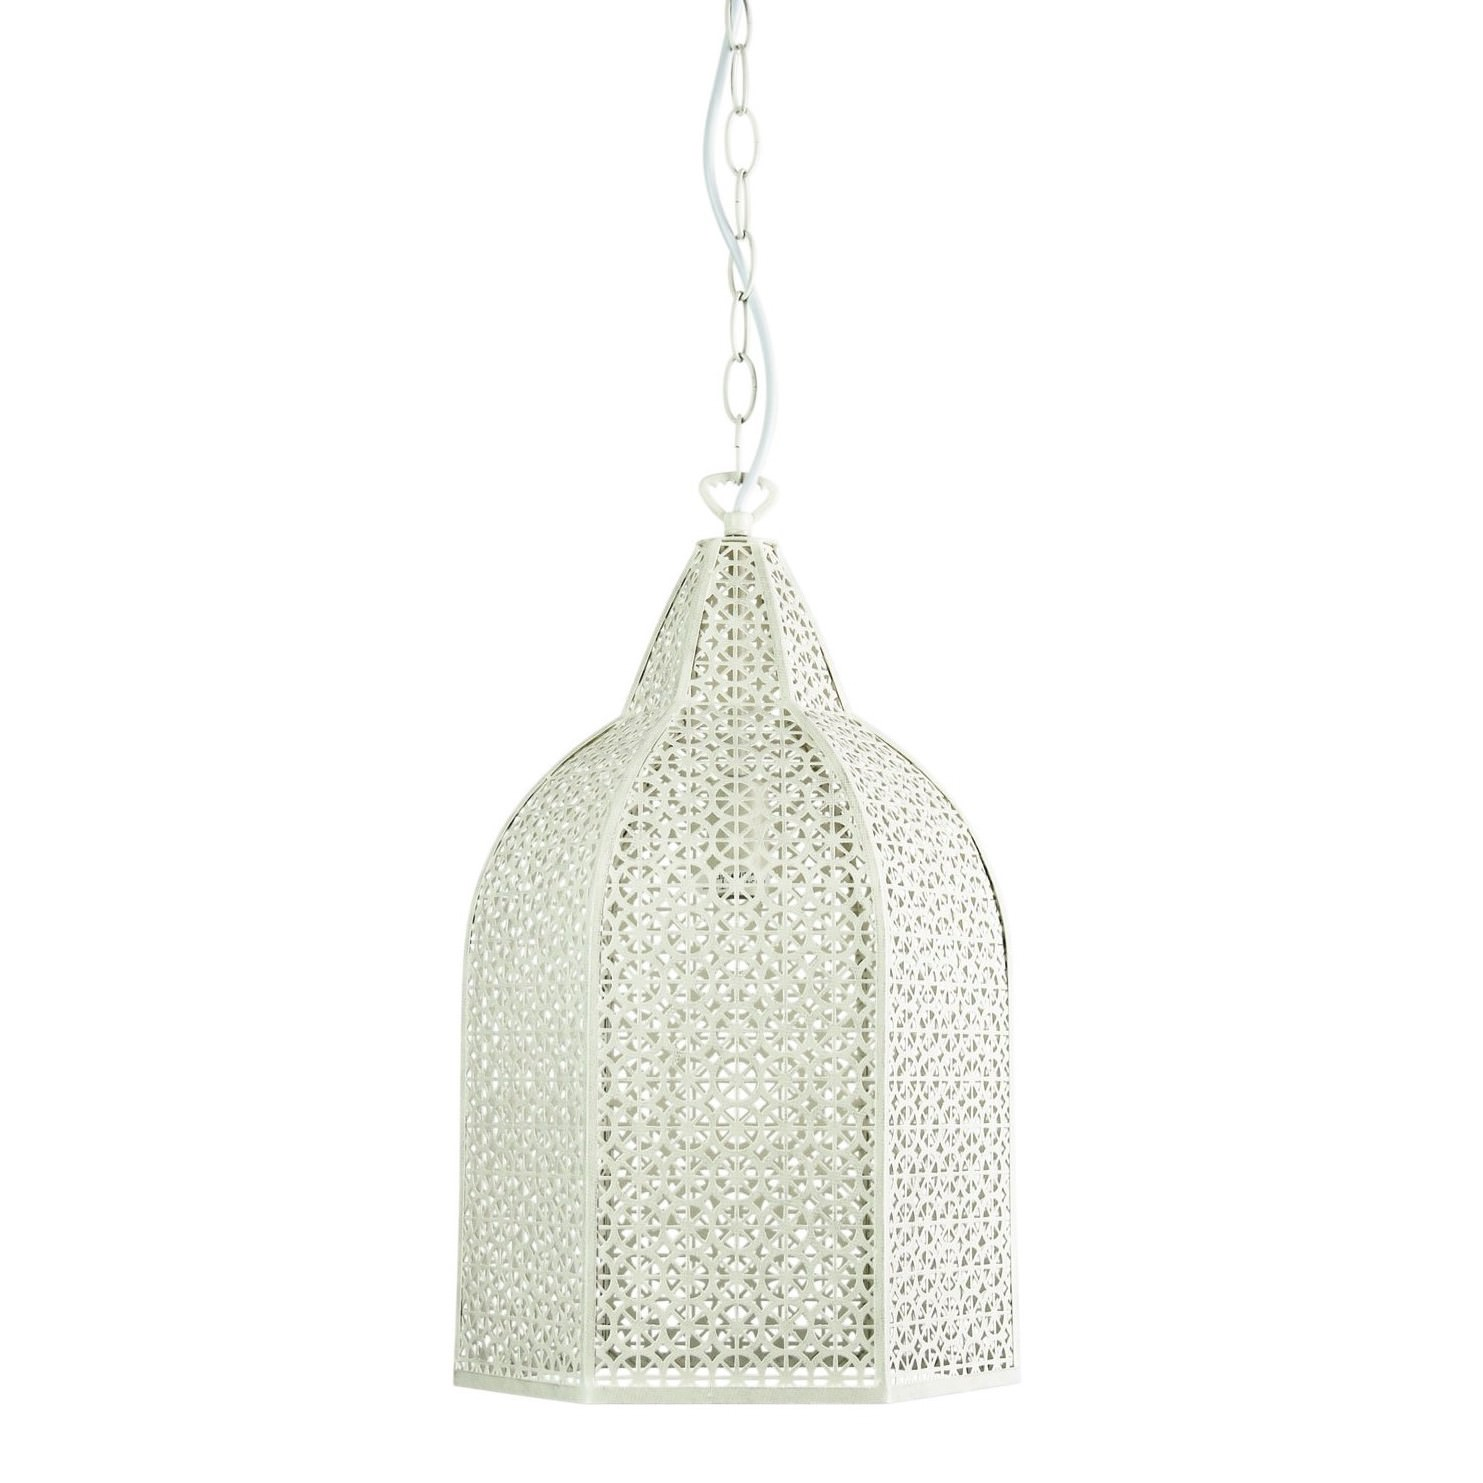 Istanbul Handcrafted Metal Pendant Light, Antique White